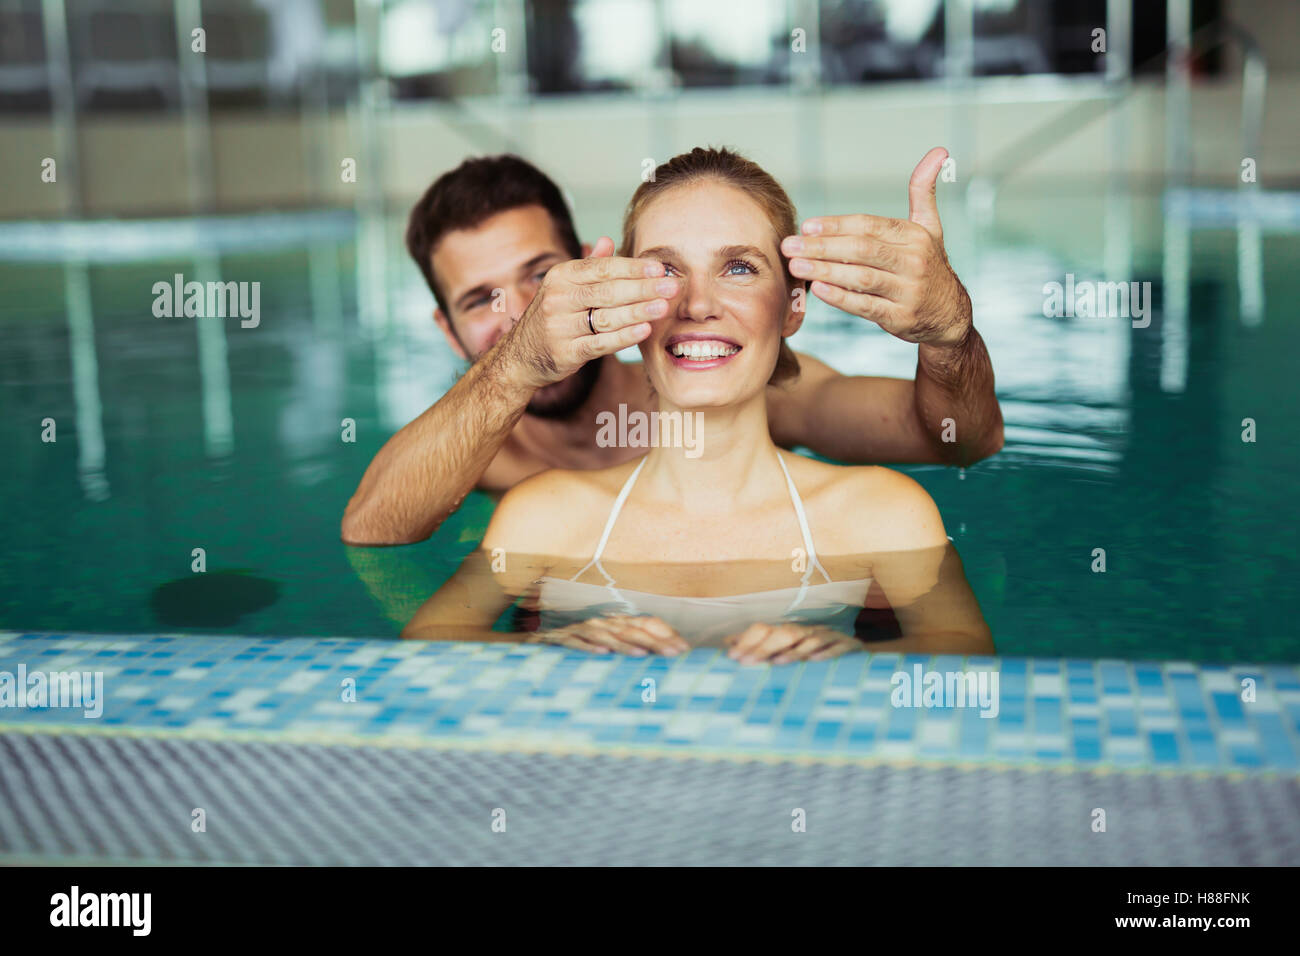 Romantic Couple Enjoying Thermal Bath Spa And Wellness Center